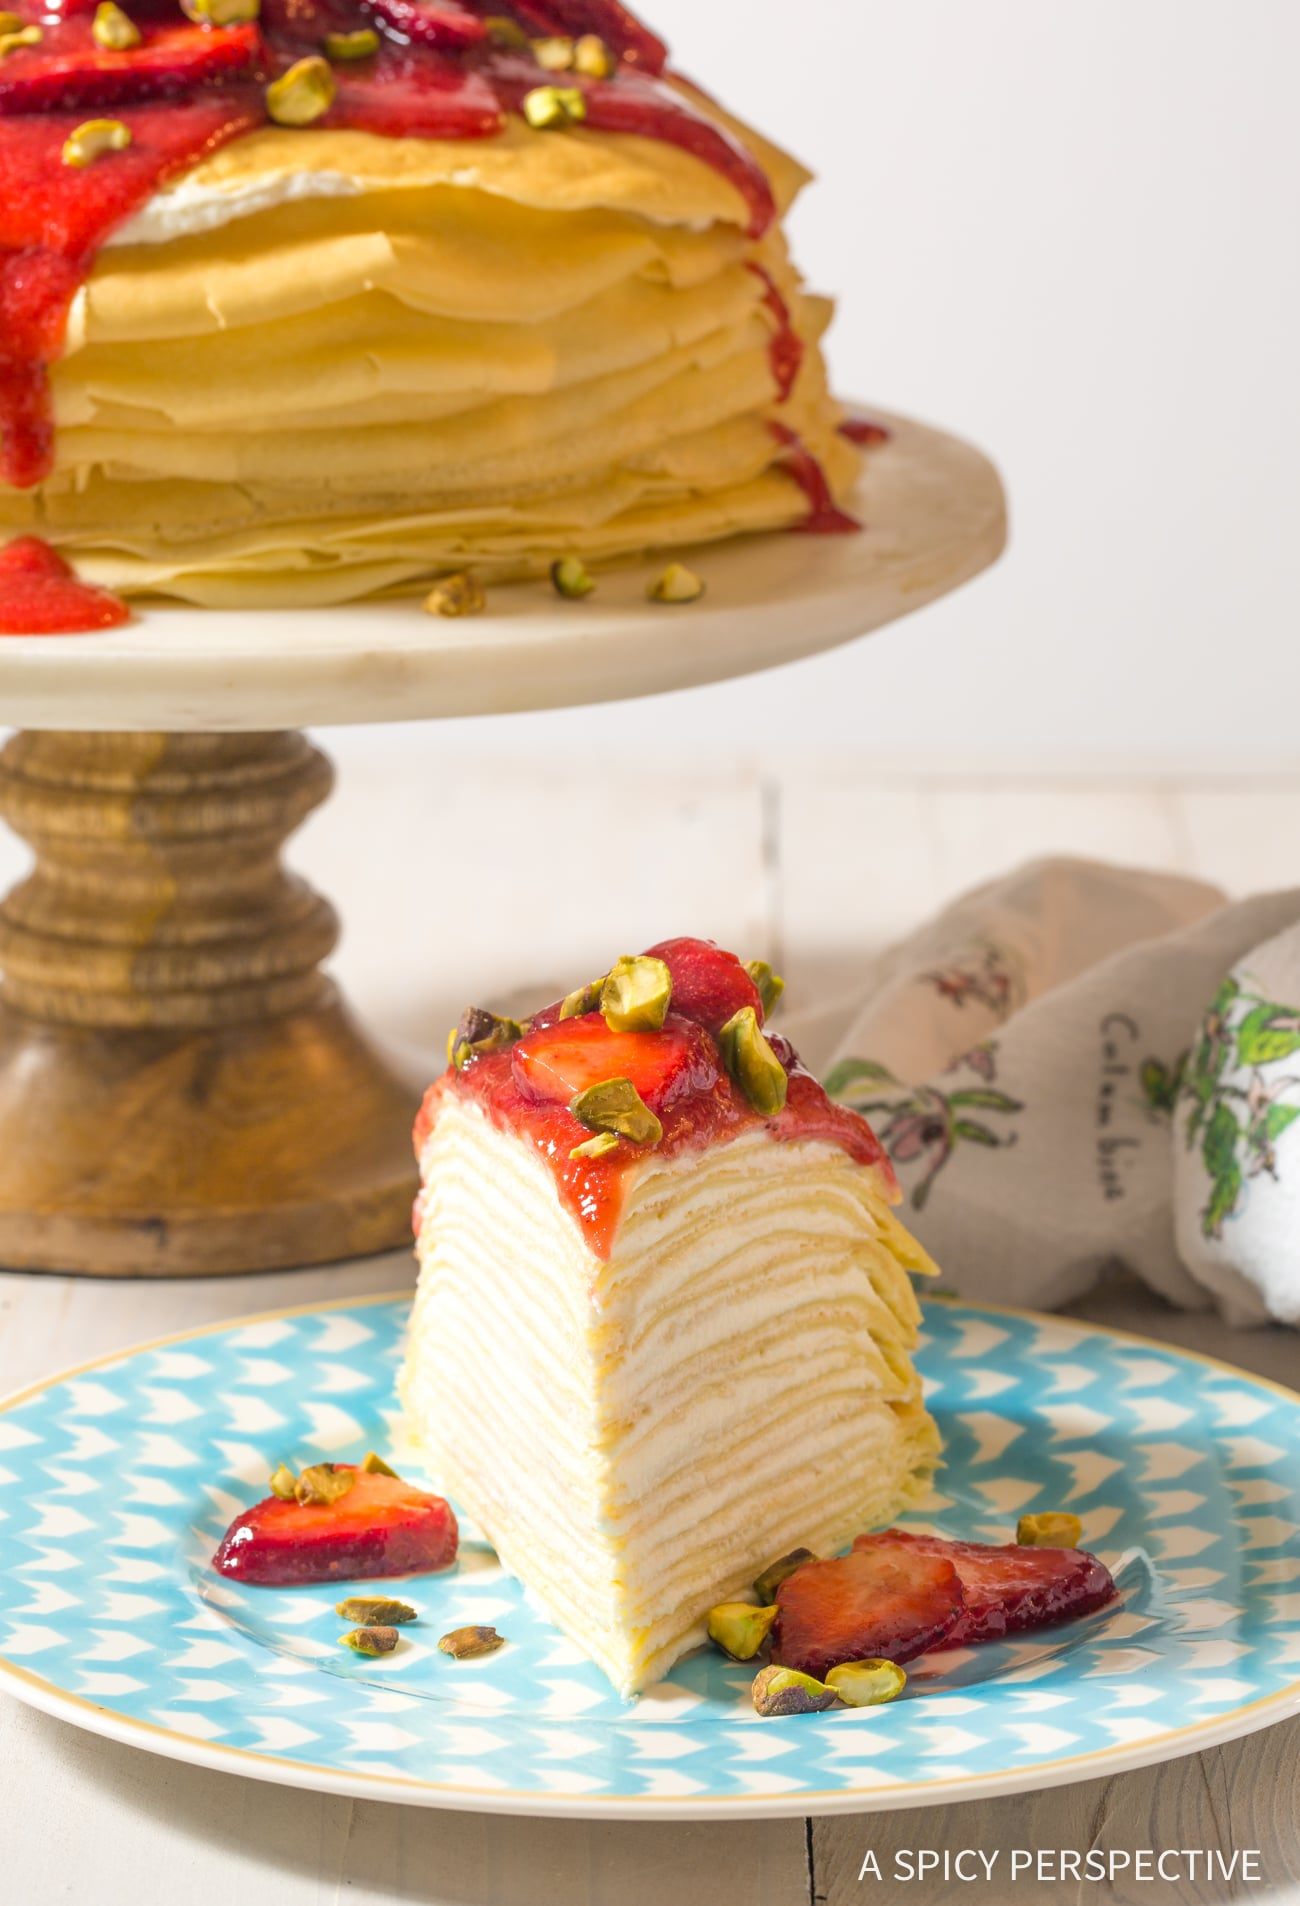 Brilliant No-Bake Lemon Ricotta Crepe Cake with Strawberry Sauce Recipe (Mother's Day Brunch!)